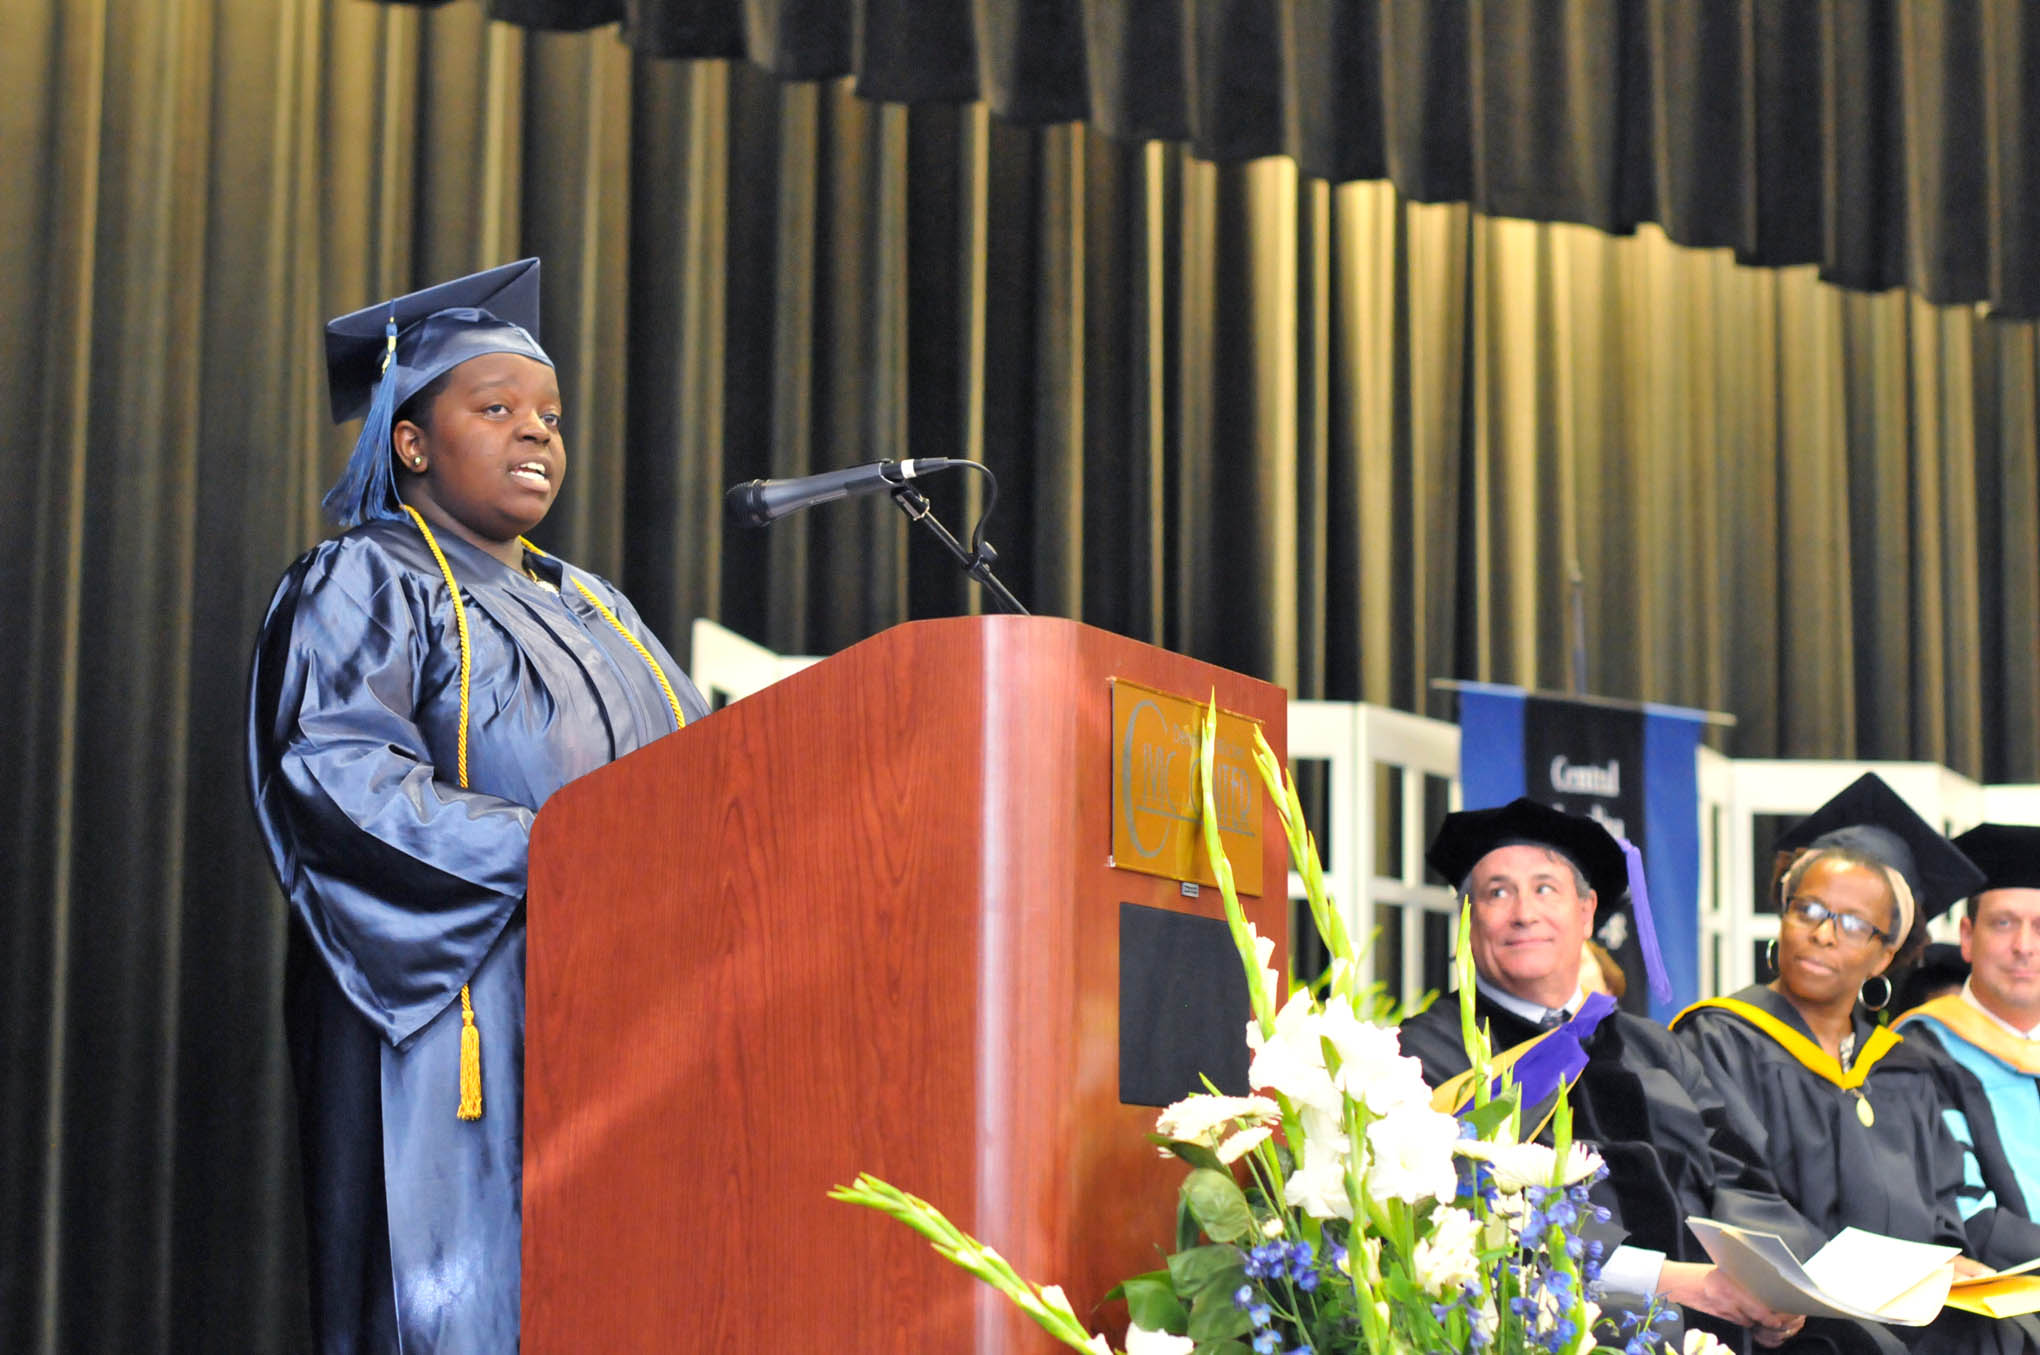 College and Career Readiness graduation held at Central Carolina Community College